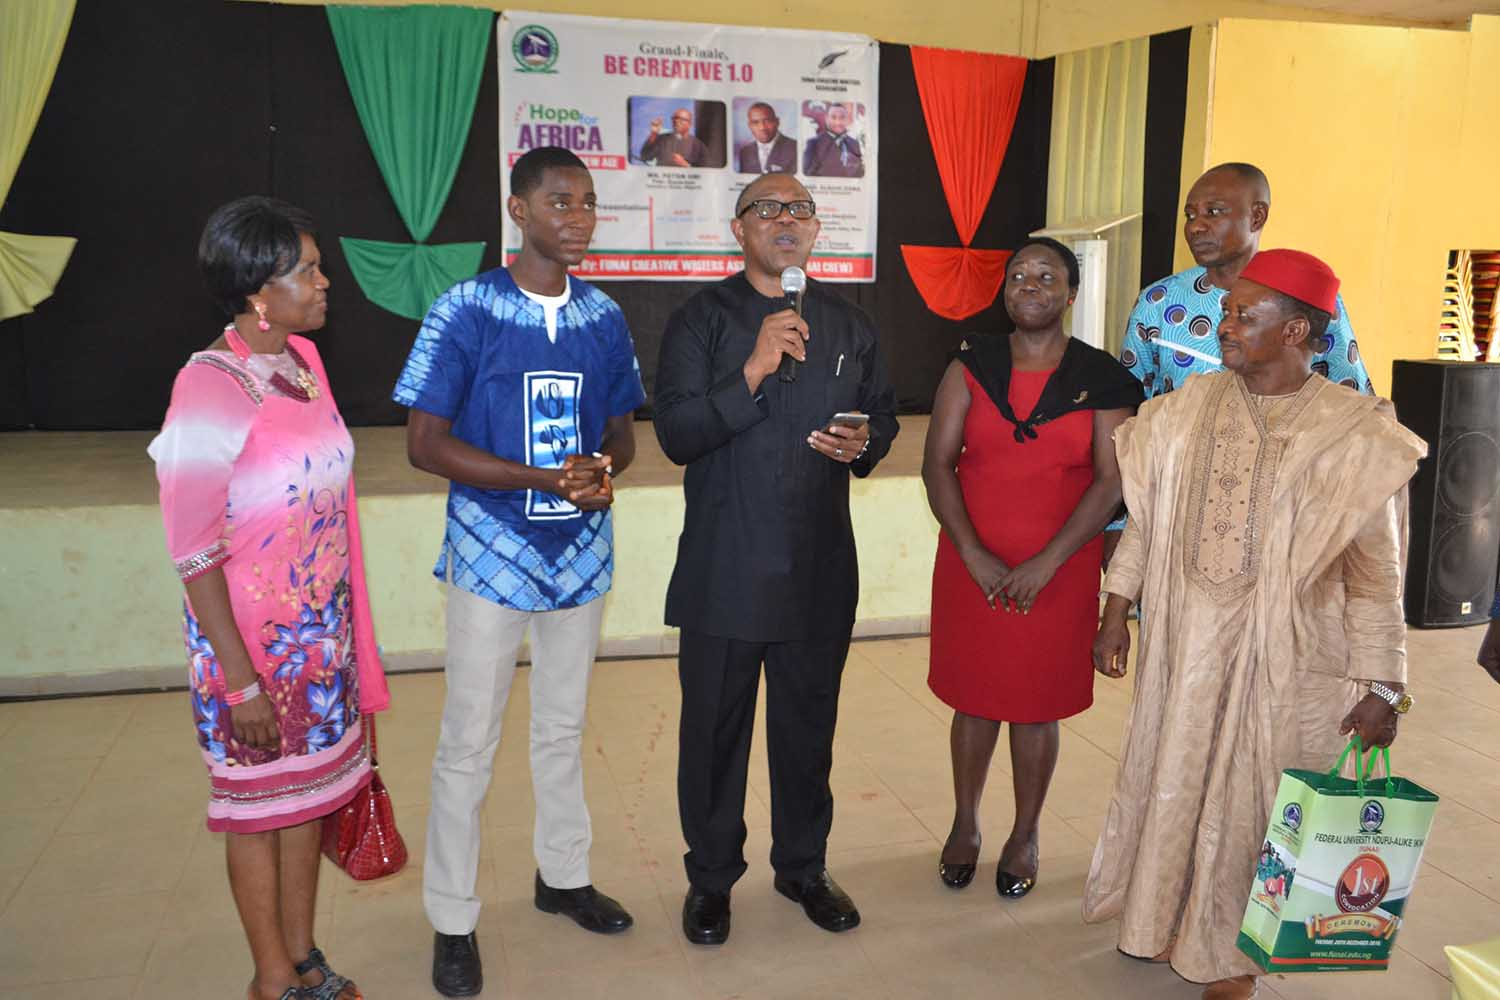 Left to right: Prof Akachi Ezeigbo (Donor of Prize for prose fiction), Uche Agbo (President AE-FUNAI CREW), Mr Peter Obi (Special Guest of honour), Prof G.M.T Emezue (Matron of AE-FNAI CREW), Prof M. Edoga (Vice-Chancellor's Representative